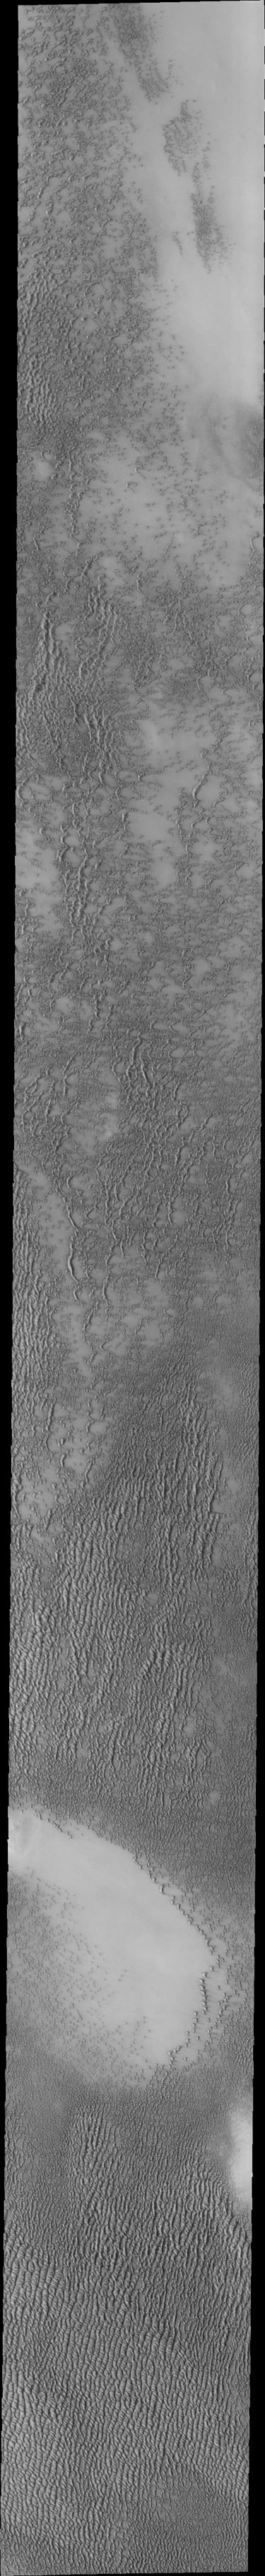 Siton Undae is a large dune field located in the northern plains near Escorial Crater. This image from NASA's 2001 Mars Odyssey spacecraft shows part of a dune field just west of Escorial Crater (just off the top of image).